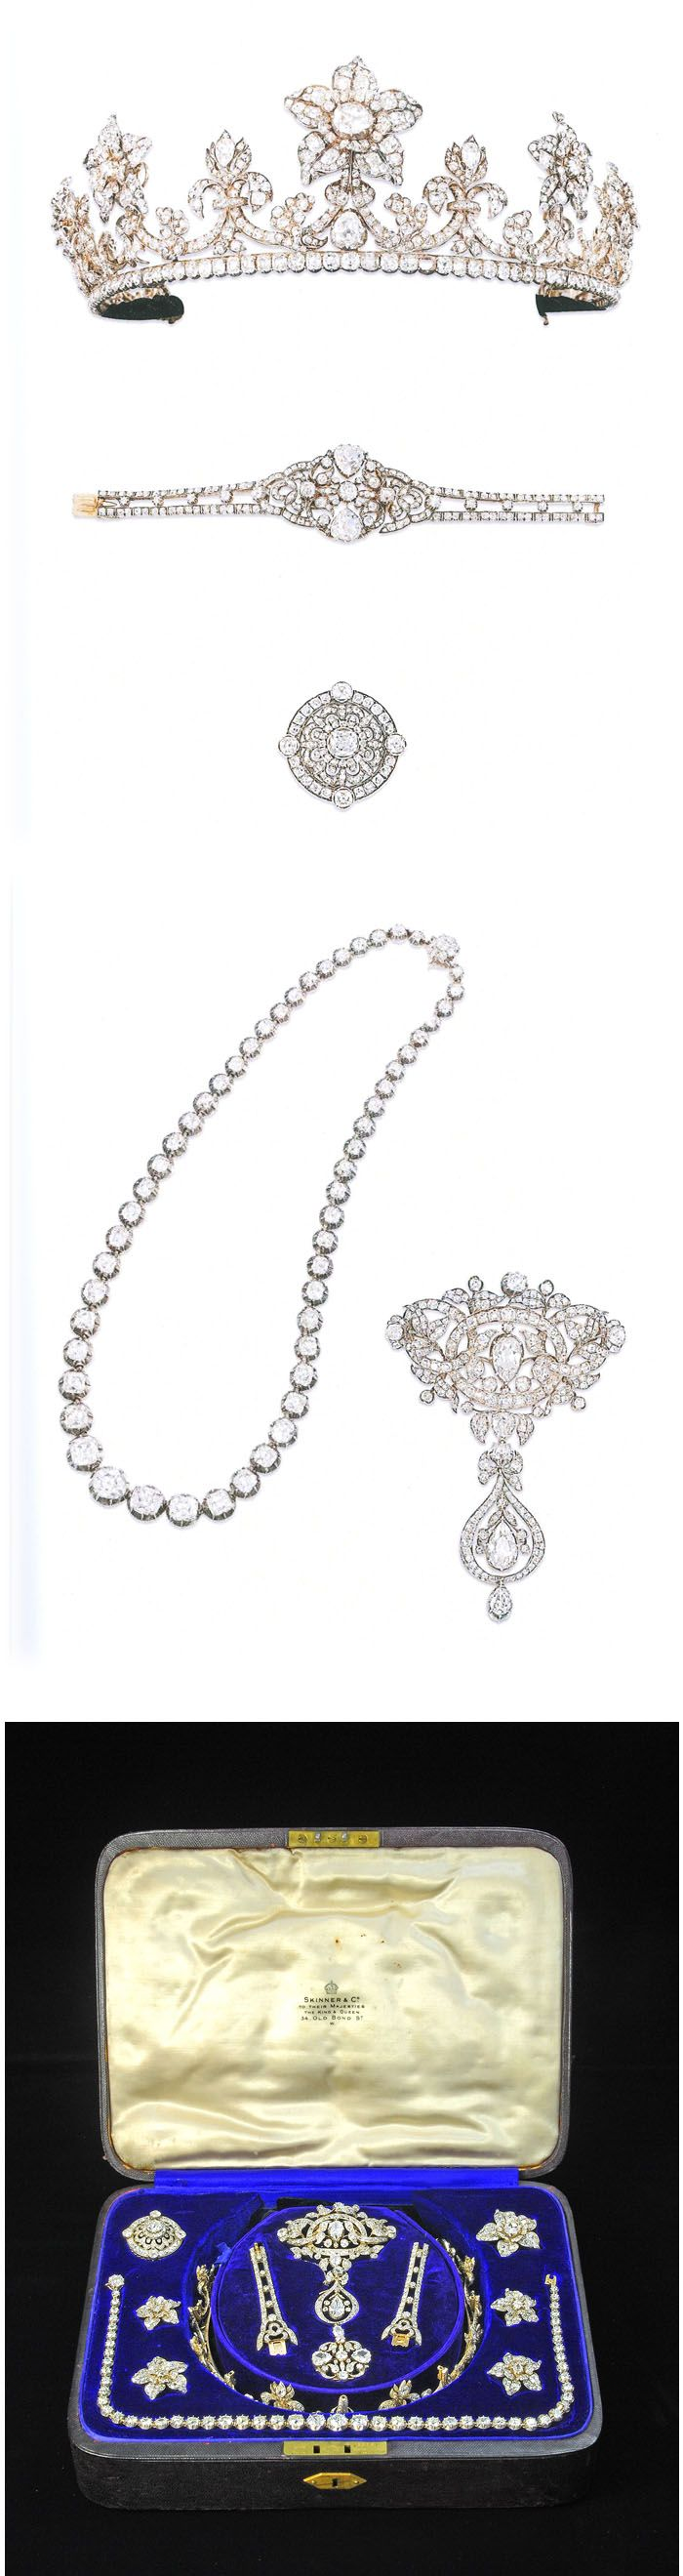 The Macclesfield diamond jewels. Comprising a tiara with five detachable flowerhead cluster brooches, a riviere necklace, a stomacher brooch and a bracelet with two interchangeable cluster central panels. The tiara designe as a tapering row of old cushion-cut diamonds surmounted by a graduated series of fleur-de-lys motifs with garland and foliate intersections to a central pear shaped diamnd collet, with five detachable pave-set naturalistic flowerhead clusters. ca. 1850